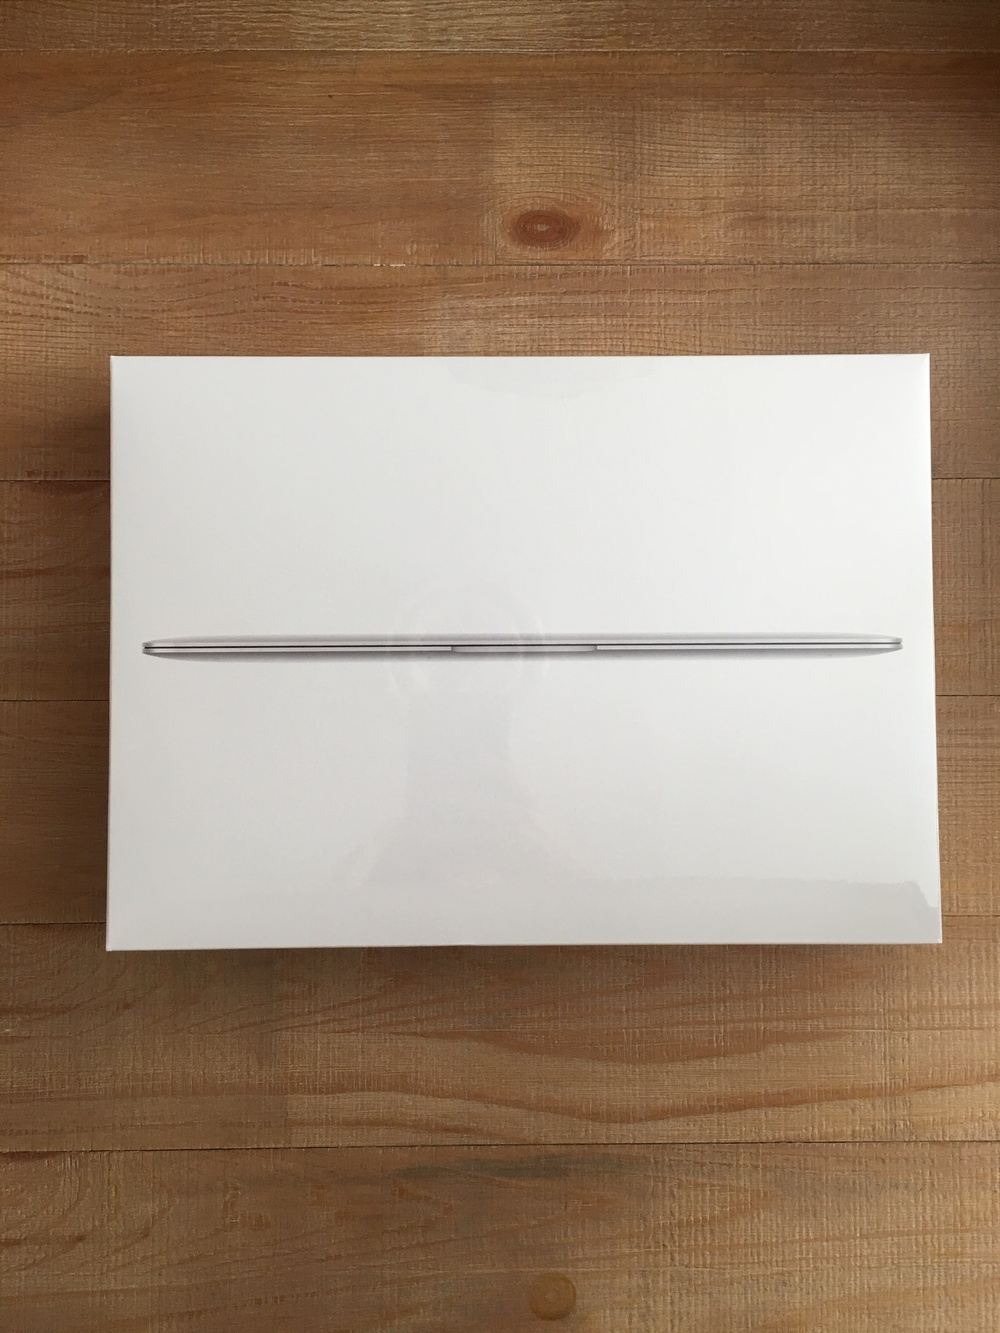 "MacBook $1299 value: 1.1GHz dual-core Intel Core m3 processor, 256 GB Storage, 8GB Ram, 12"" Retina Display"